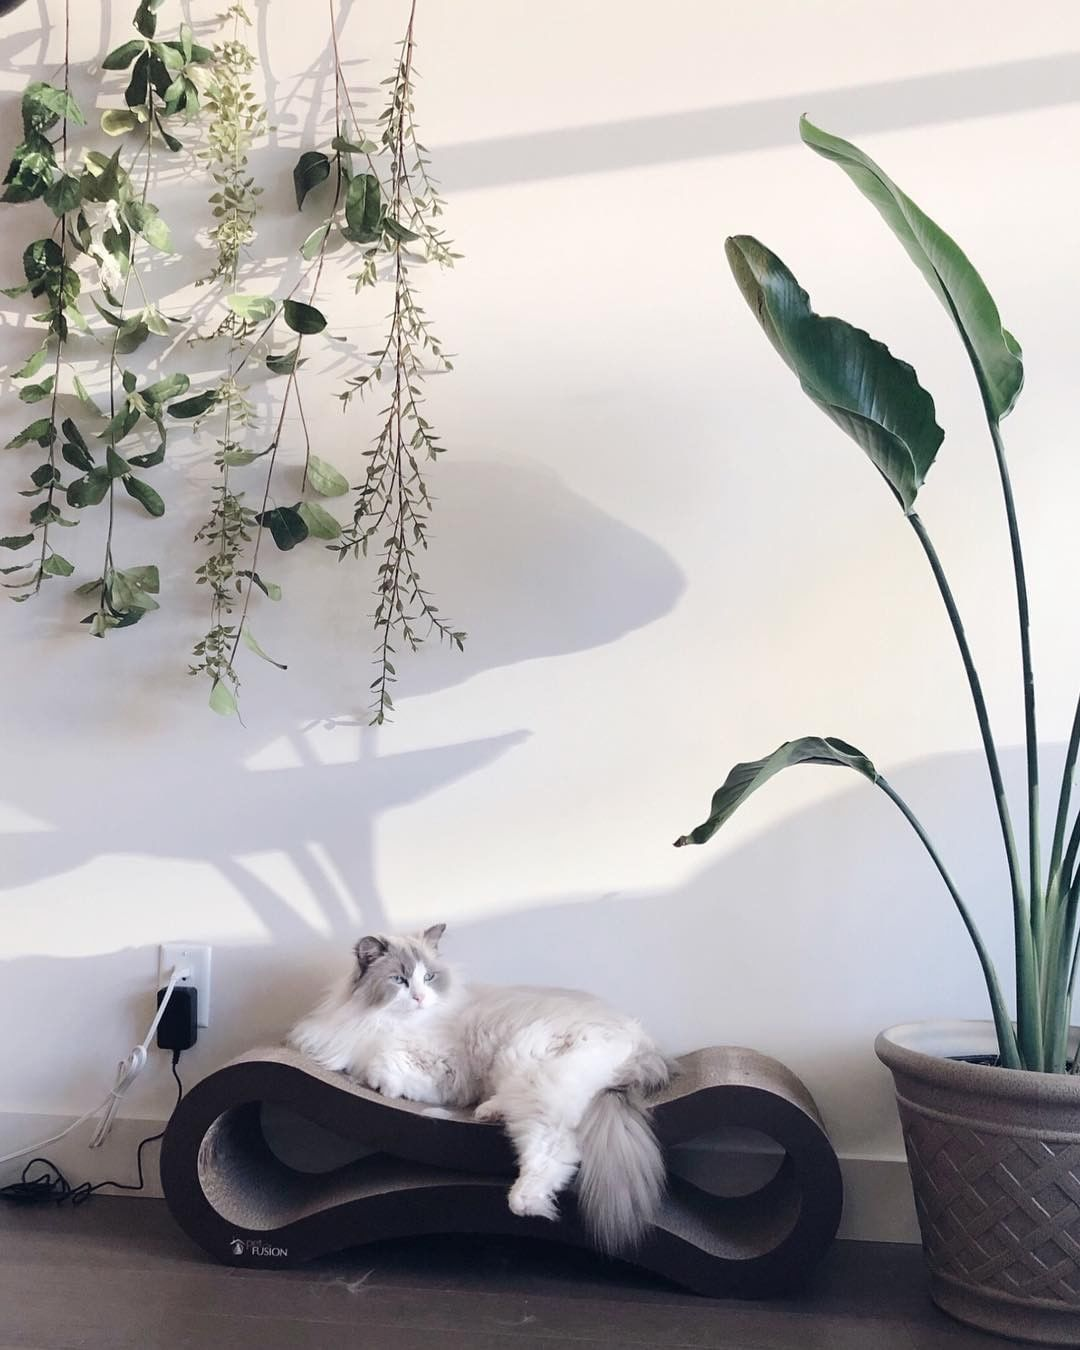 Donut is a handsome, regal prince (and he knows it) 👑 Doesnt he look like purr royalty relaxing on his Ultimate Cat Lounger? 📸: @kitties_in_cities  #kingcat #epiccat #majesticcat #catboss #fluffycat #catlounger #catbed #ragdollcat #ragdollsofinstagram #homedecor #plantsandcats #catsathome #indoorcat #bosskitty #catlife #luxury #urbancat #spoiledcat #plantlife #plantsofinstagram #plantdecor #happyplants #happycats #catlover #plantlover #kittiesincities